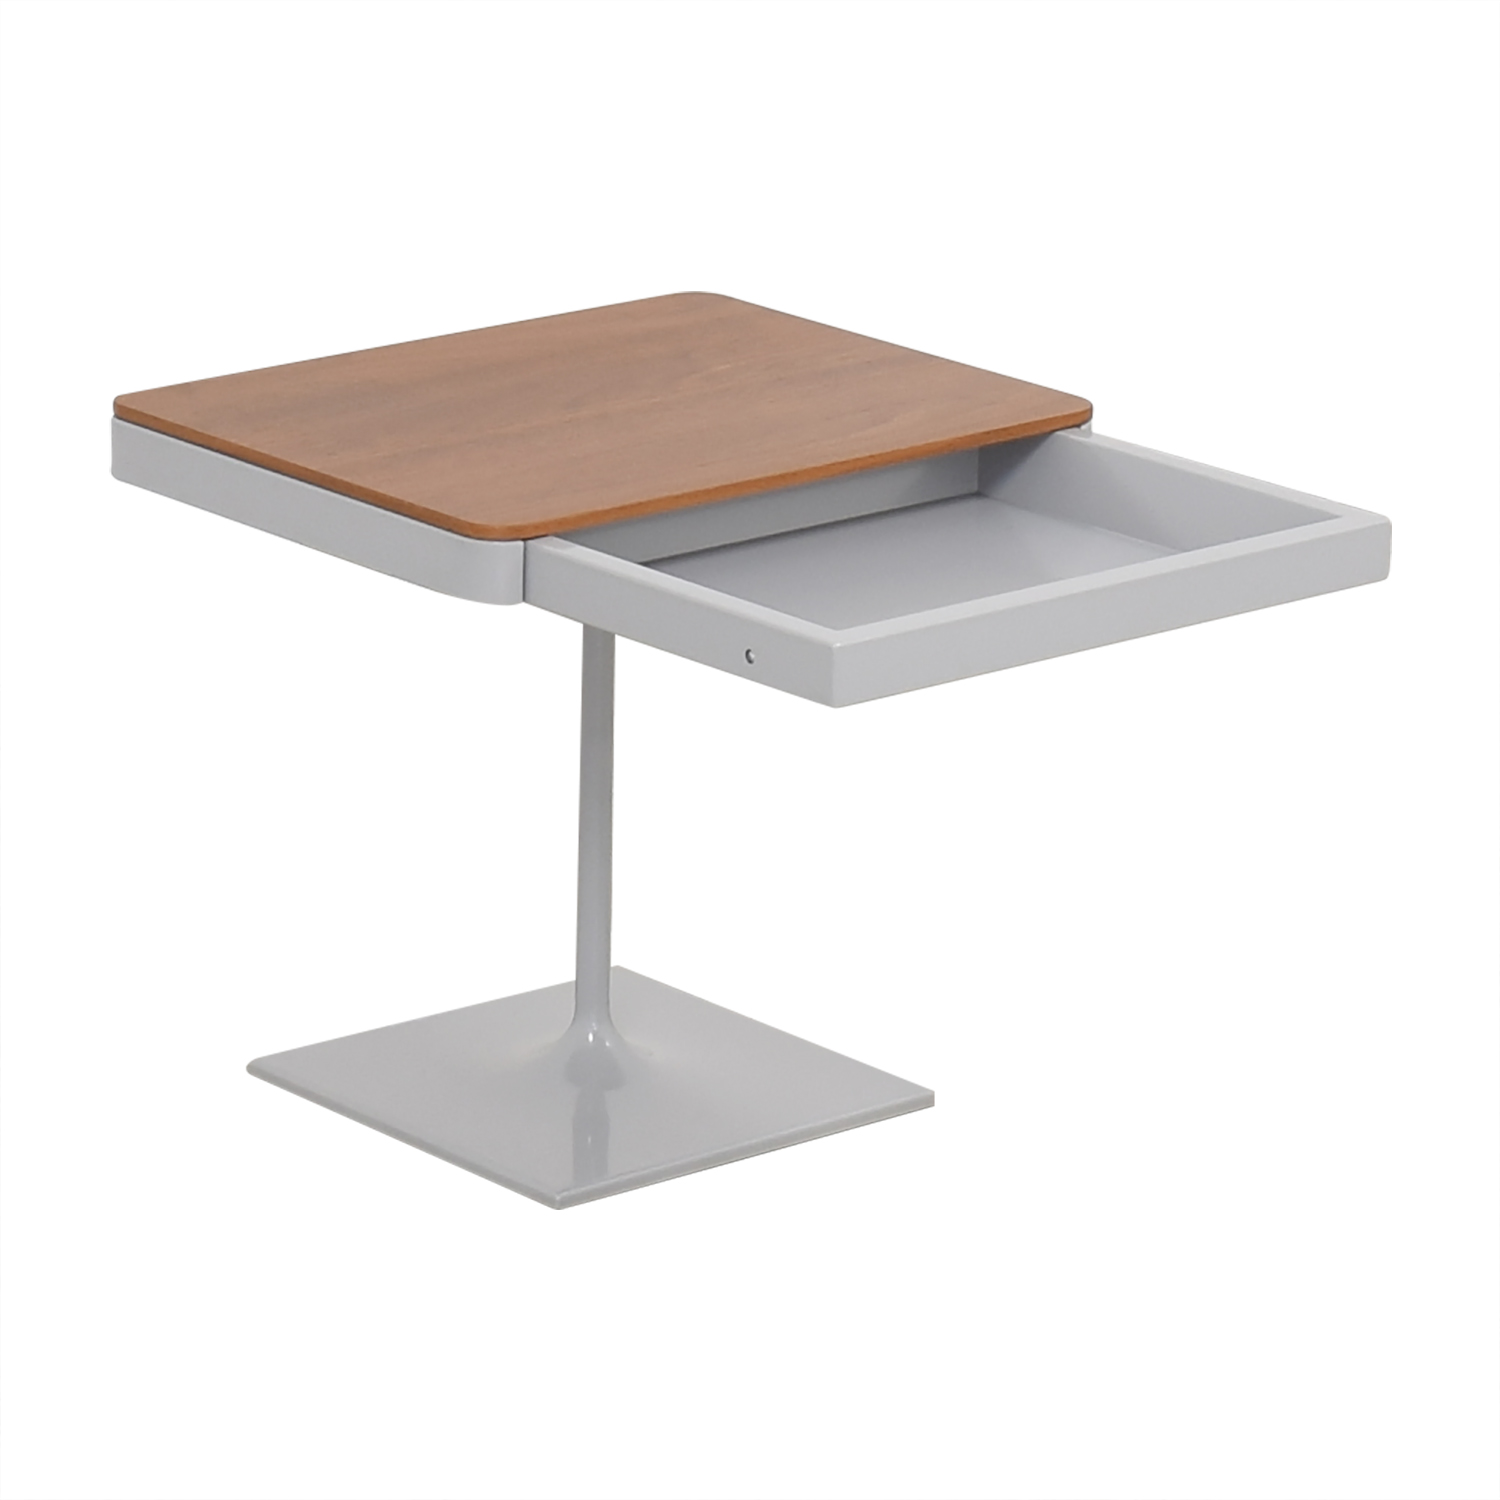 Design Within Reach Design Within Reach Min Bedside Table with Pedestal Base brown and grey